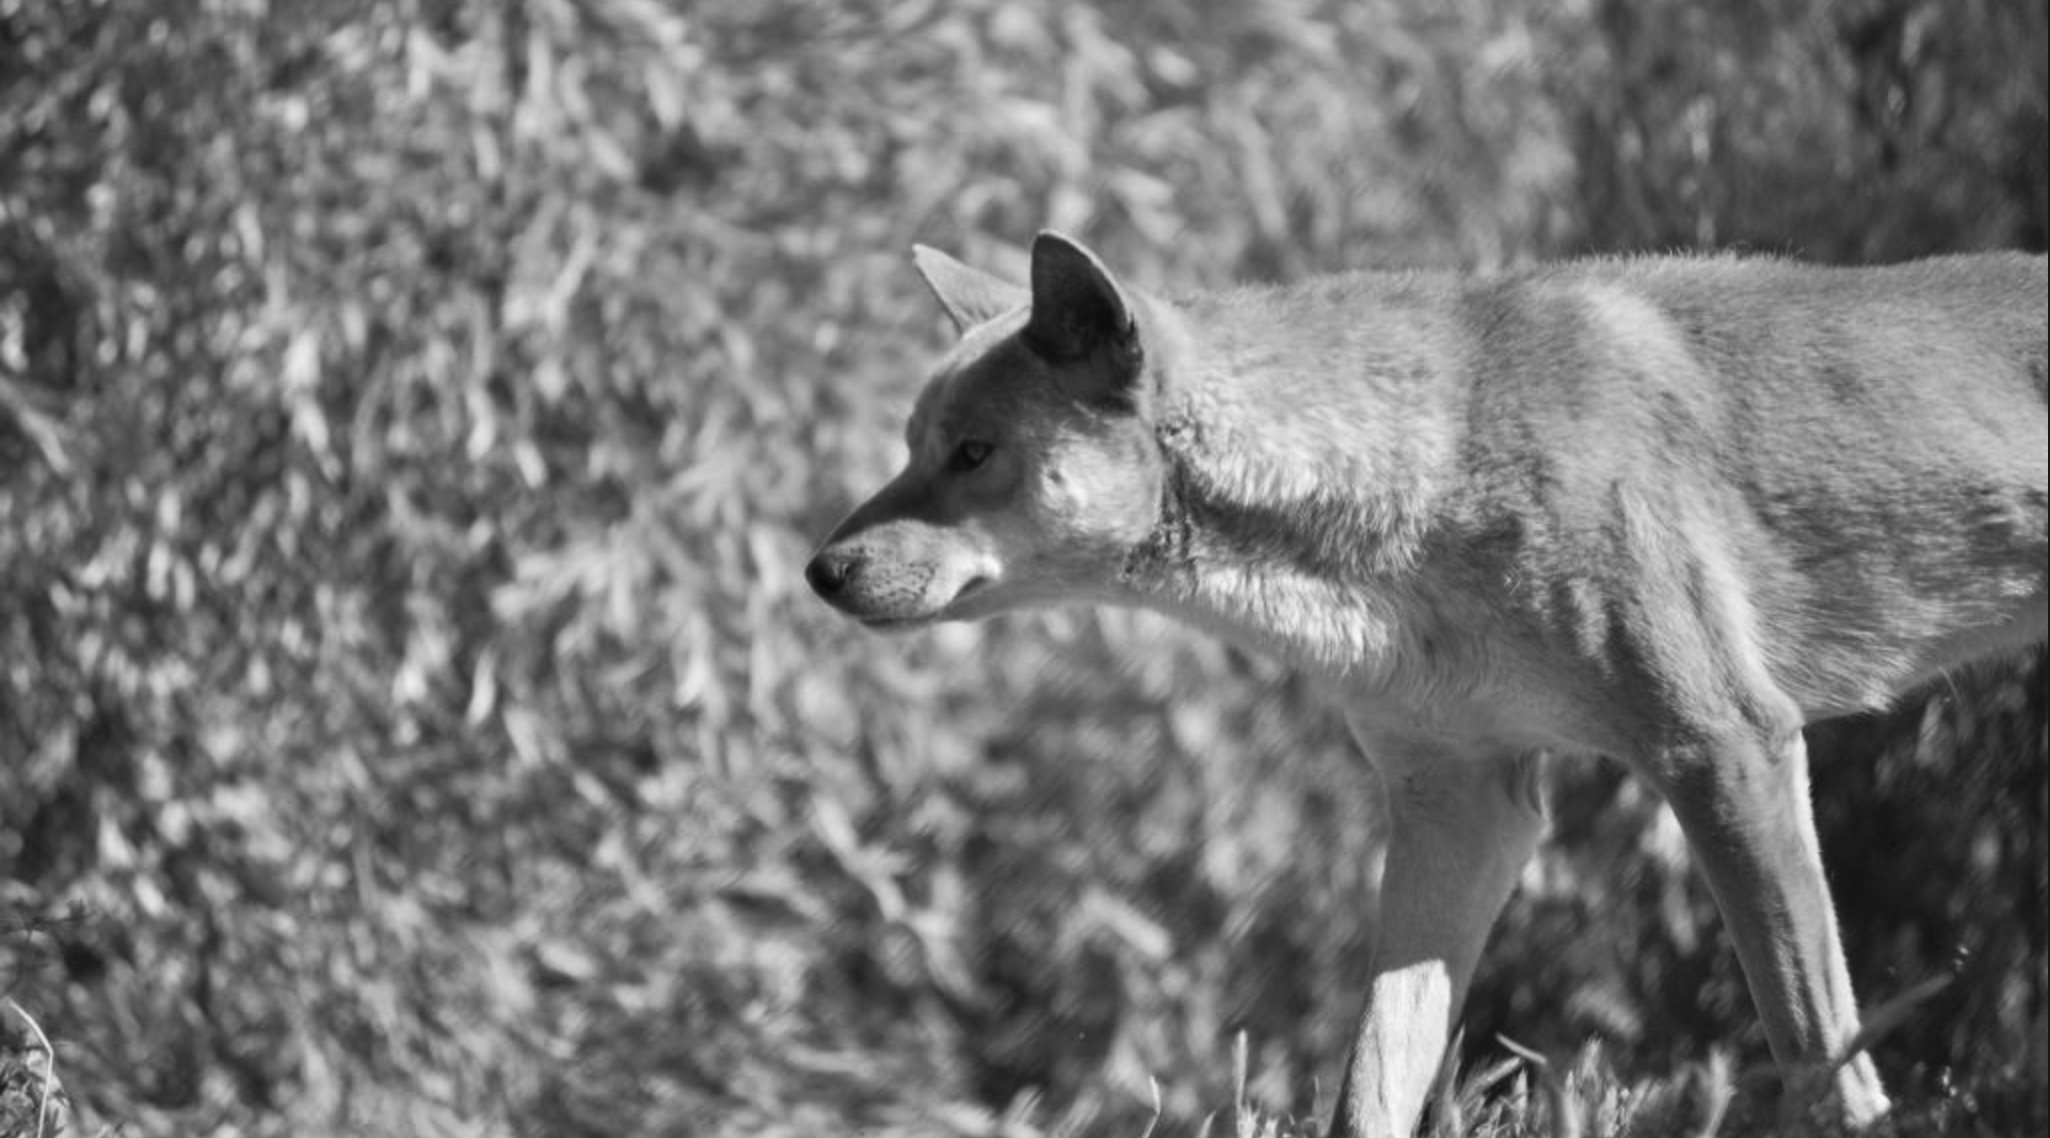 Black and white photo of a dingo